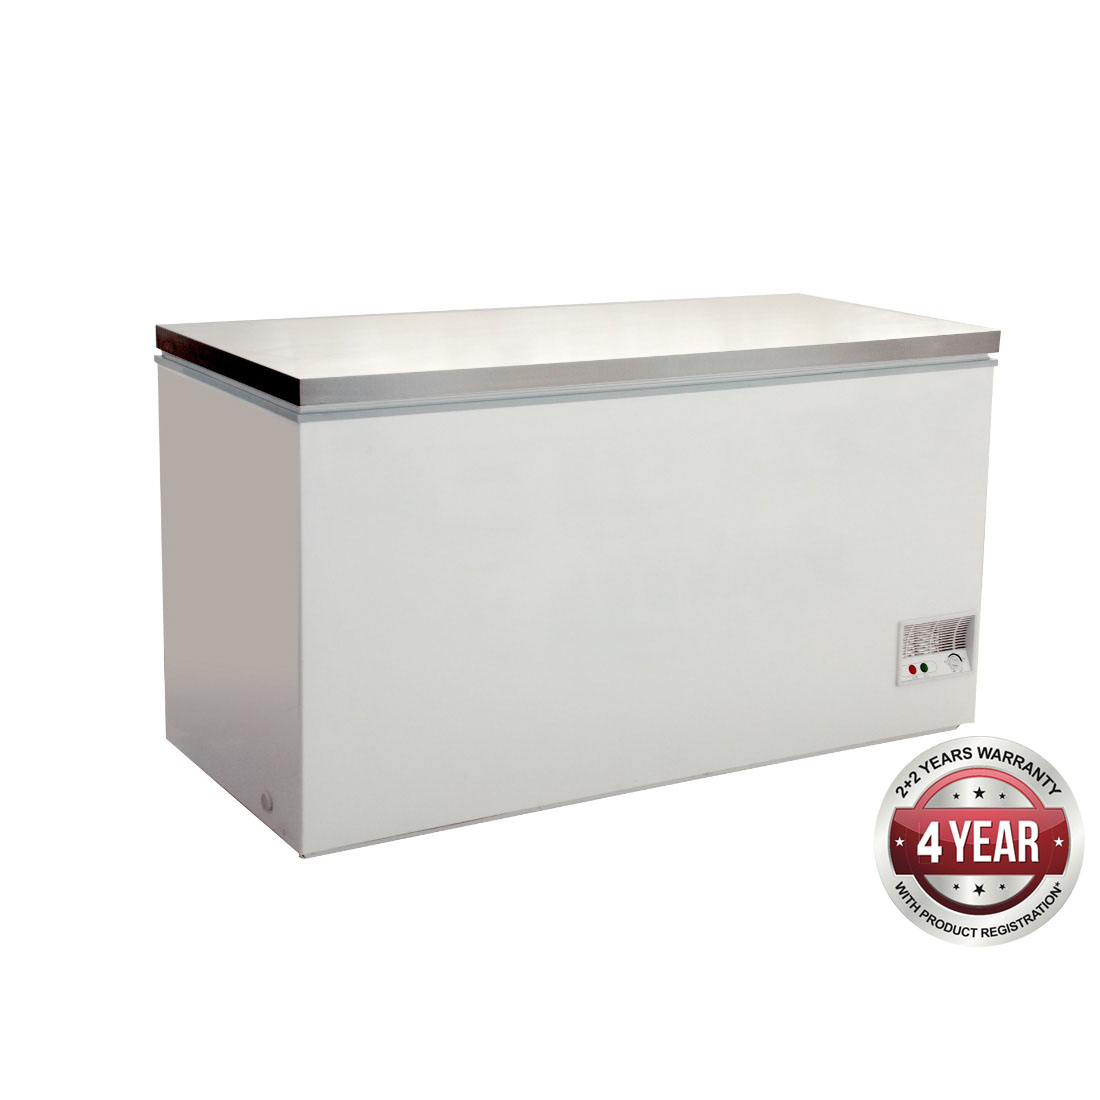 Chest Freezer with SS lids - BD768F